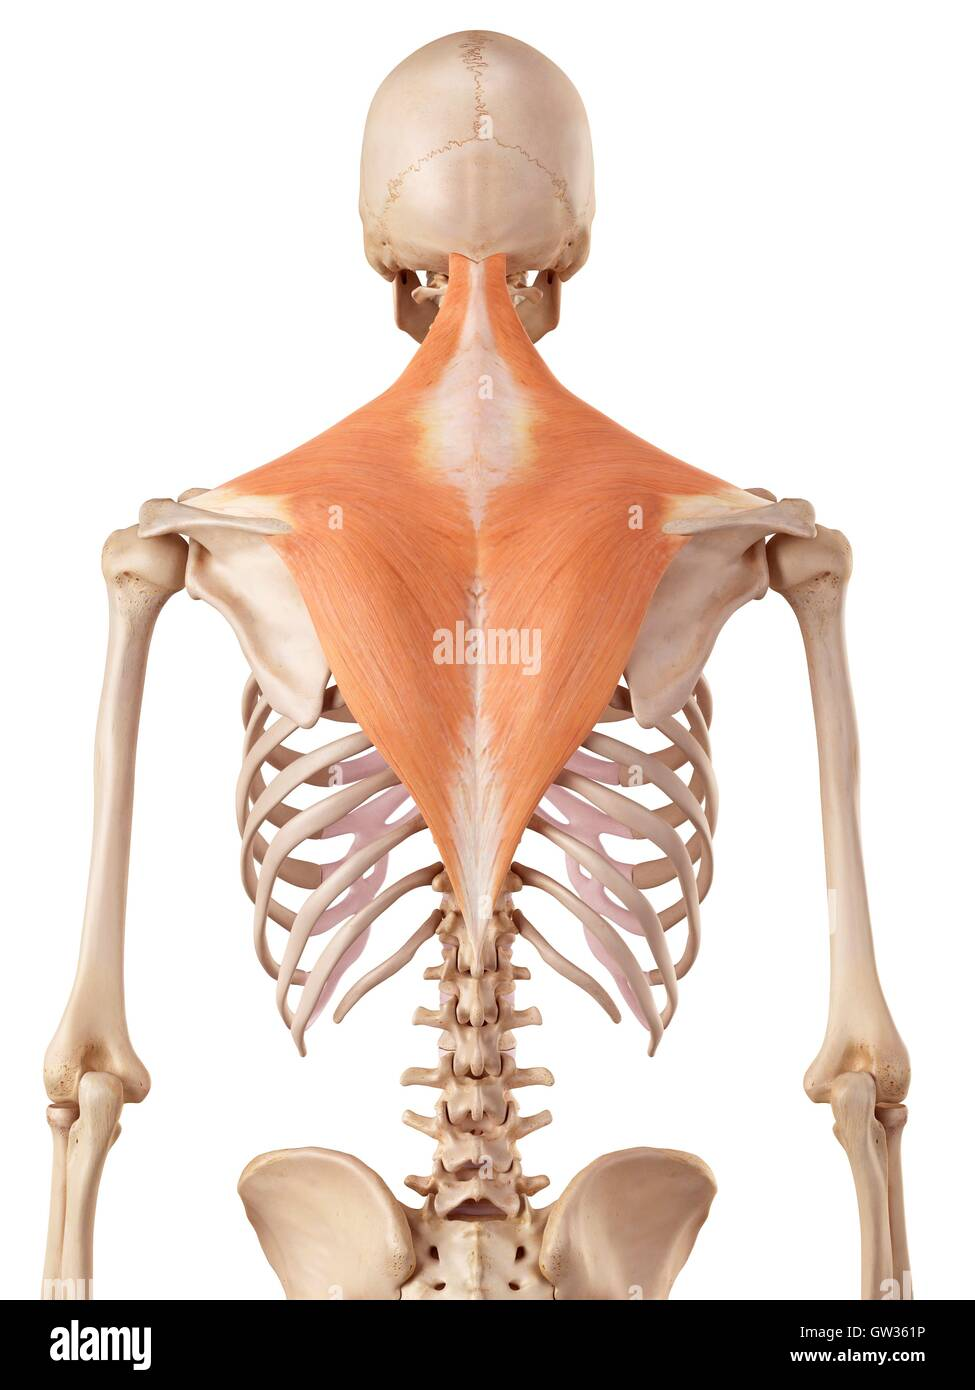 Shoulder Muscles Anatomy Stock Photos Shoulder Muscles Anatomy